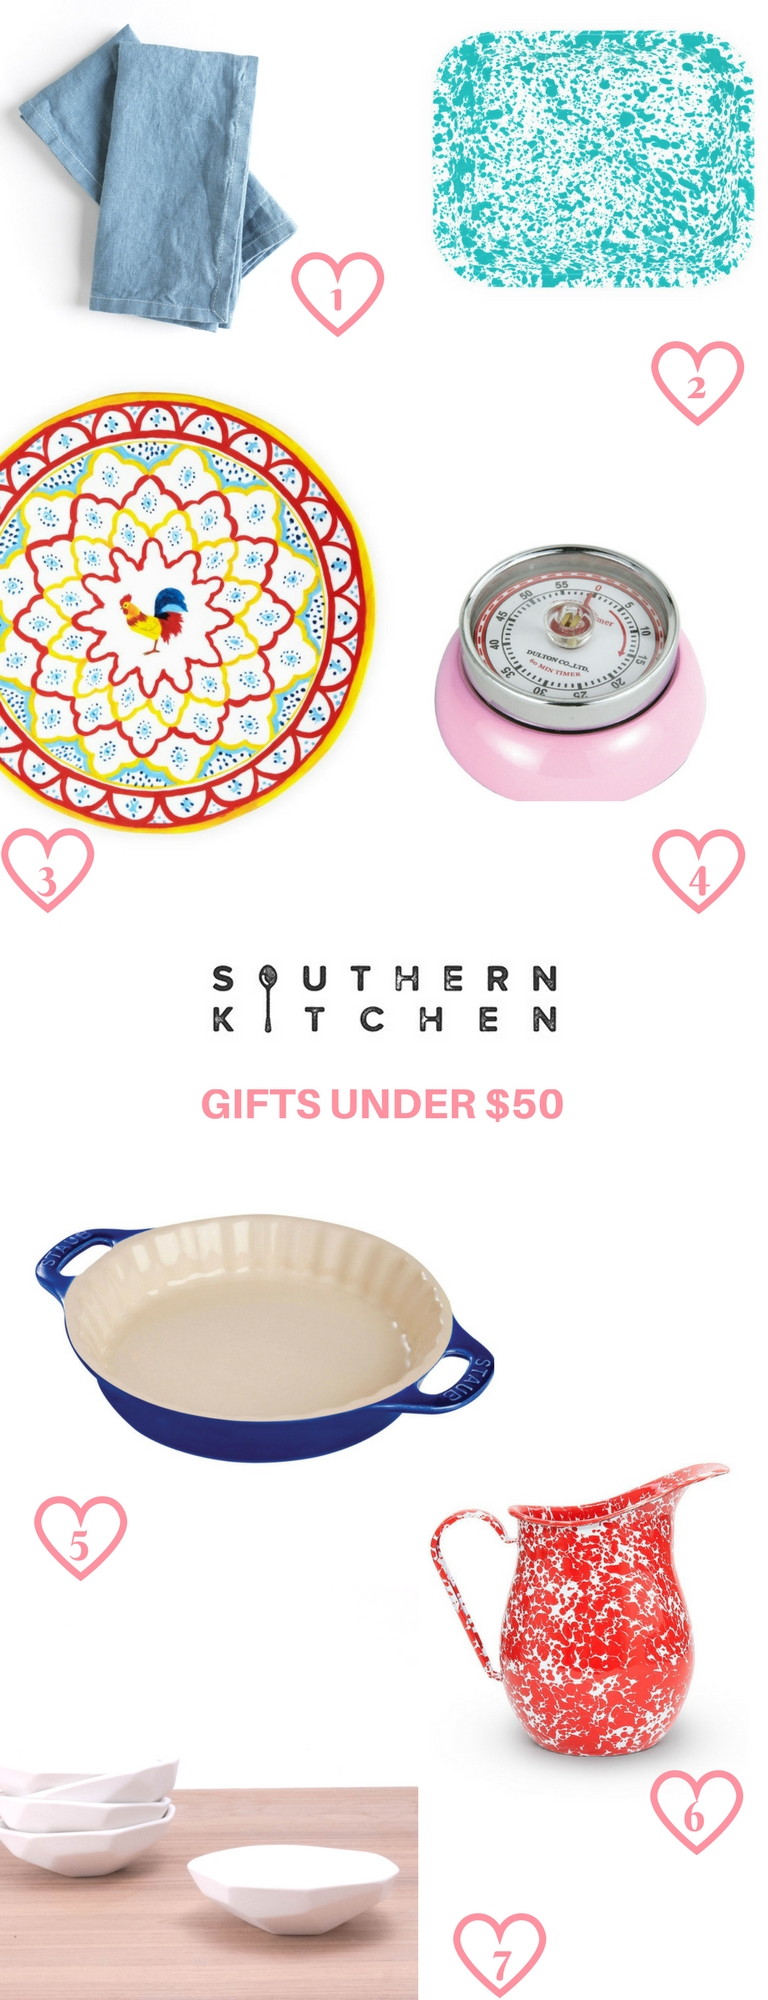 Southern Kitchen Gift Guide